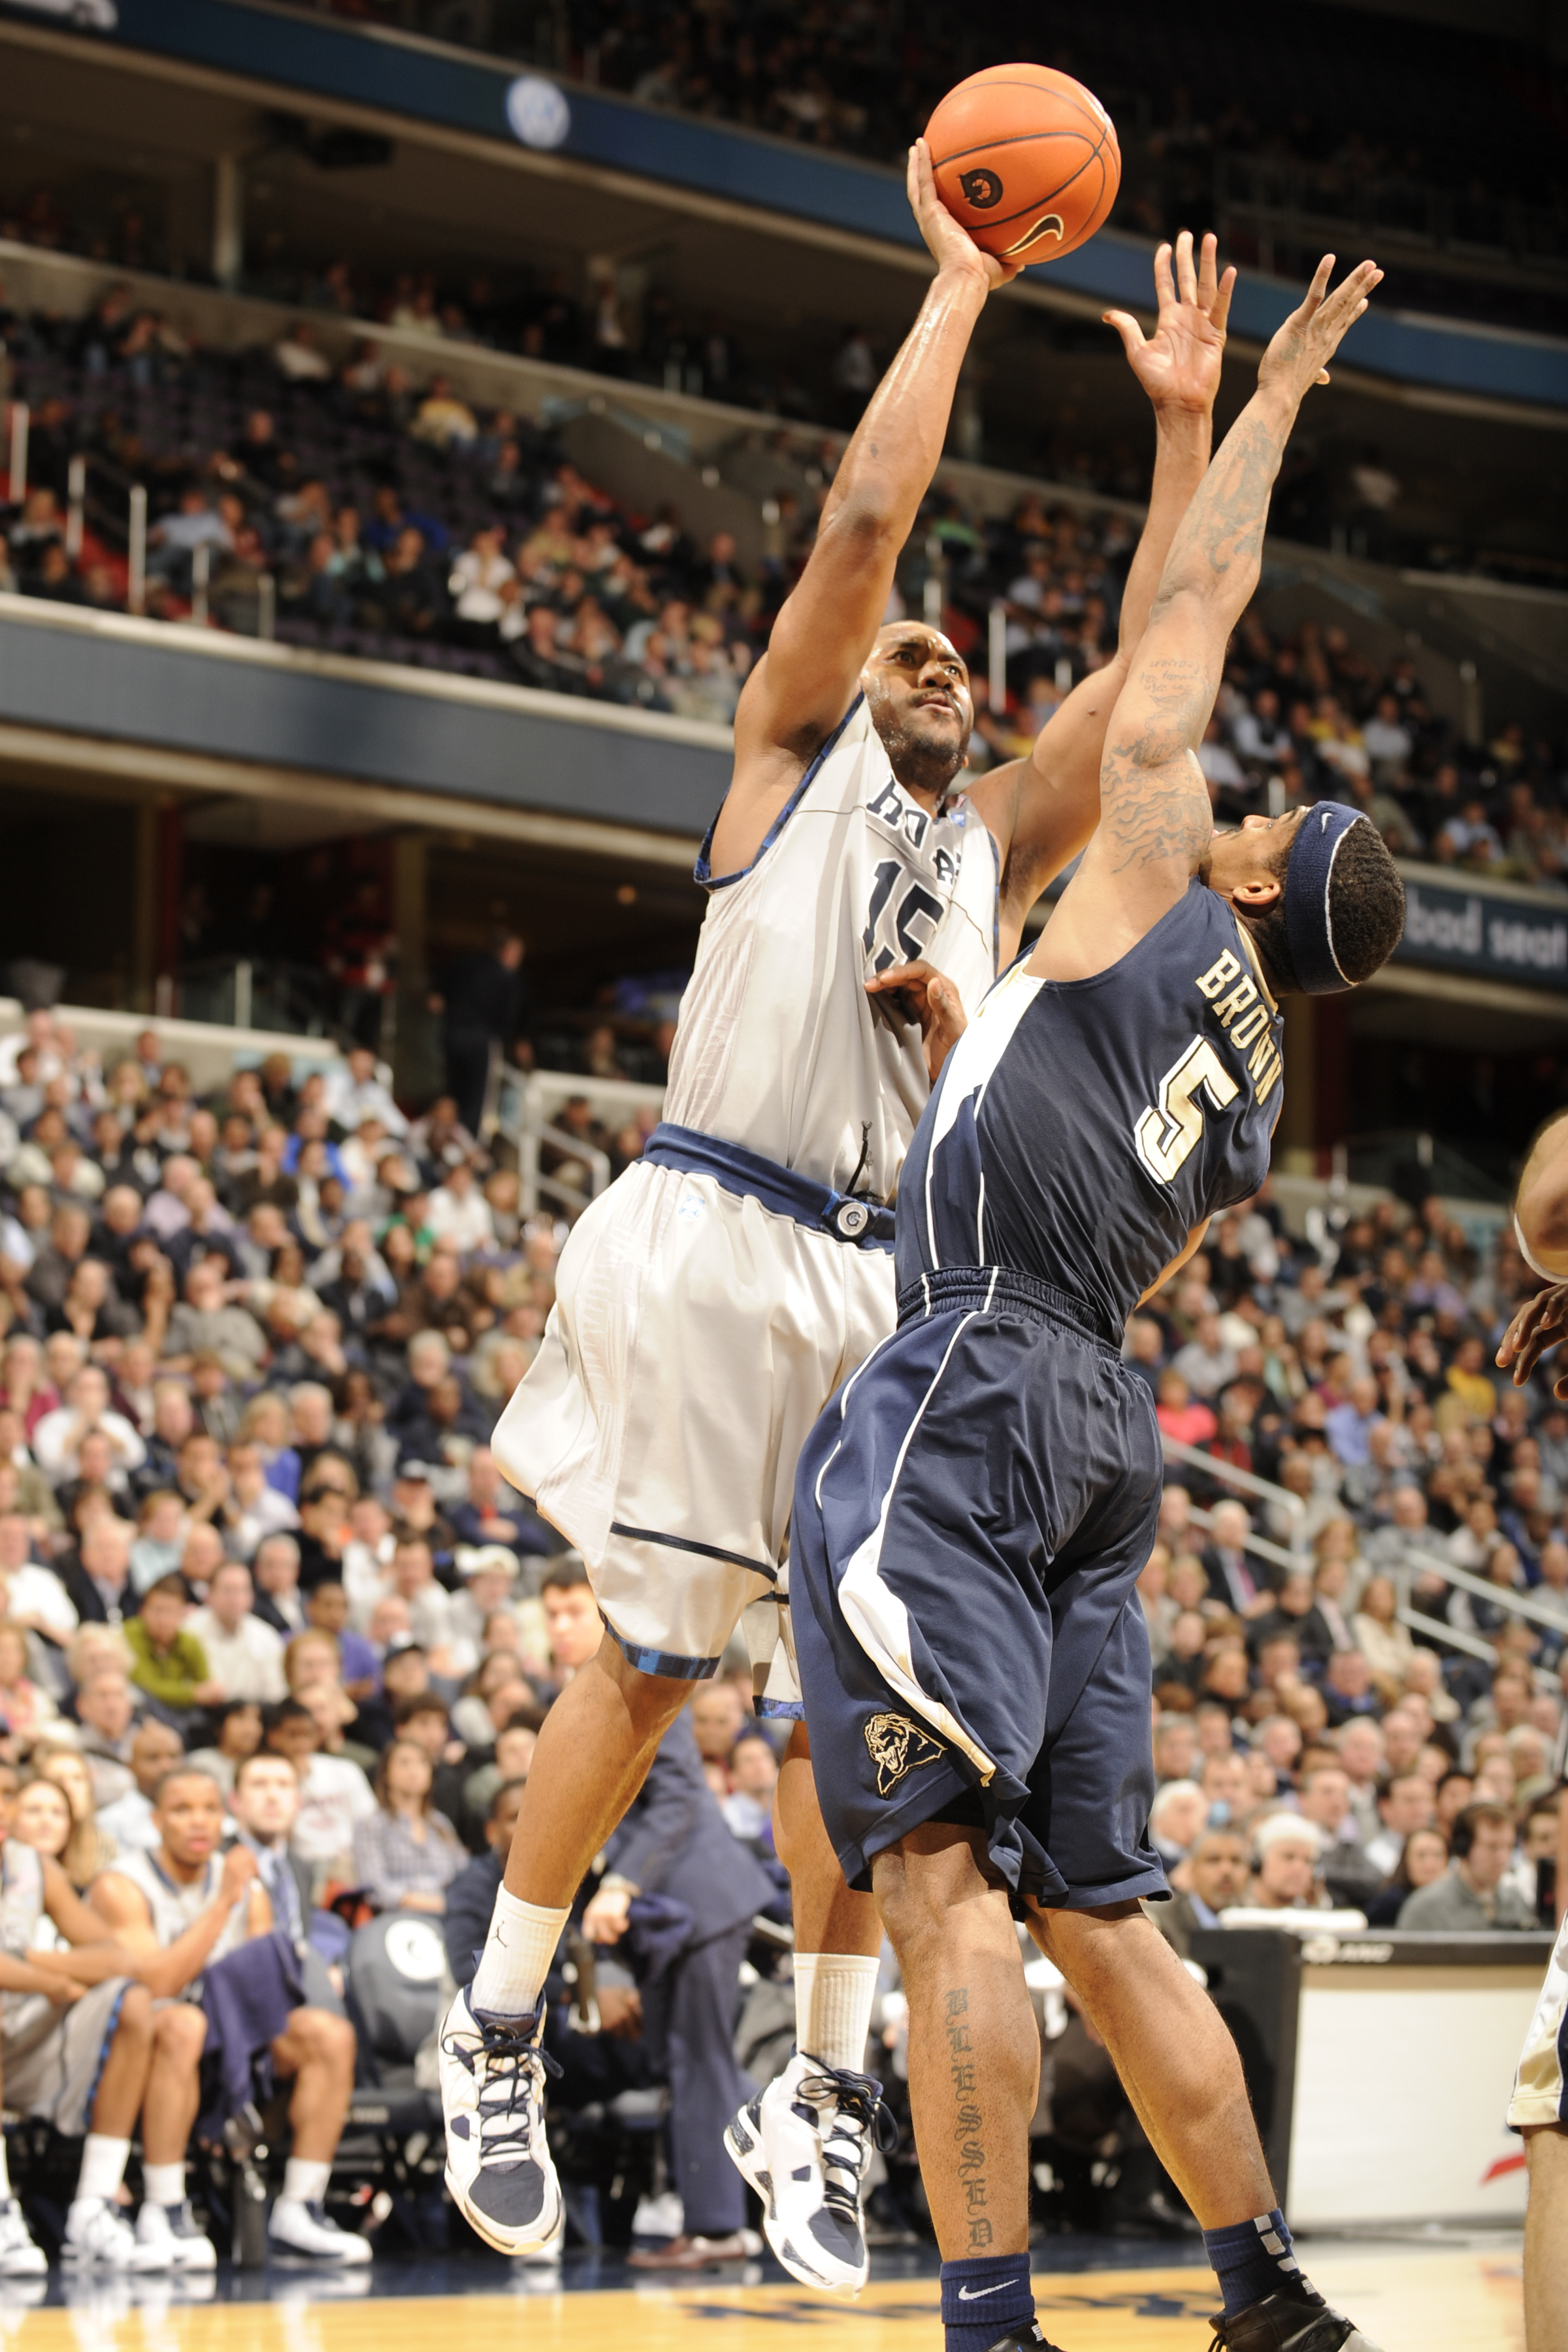 WASHINGTON, DC- JANUARY 12:  Austin Freeman #15 of the Georgetown Hoyas drives to the basket during a college basketball game against  Gilbert Brown #5 ofthe Pittsburgh Panthers on January 12, 2011 at the Verizon Center in Washington, DC.   The Panthers w